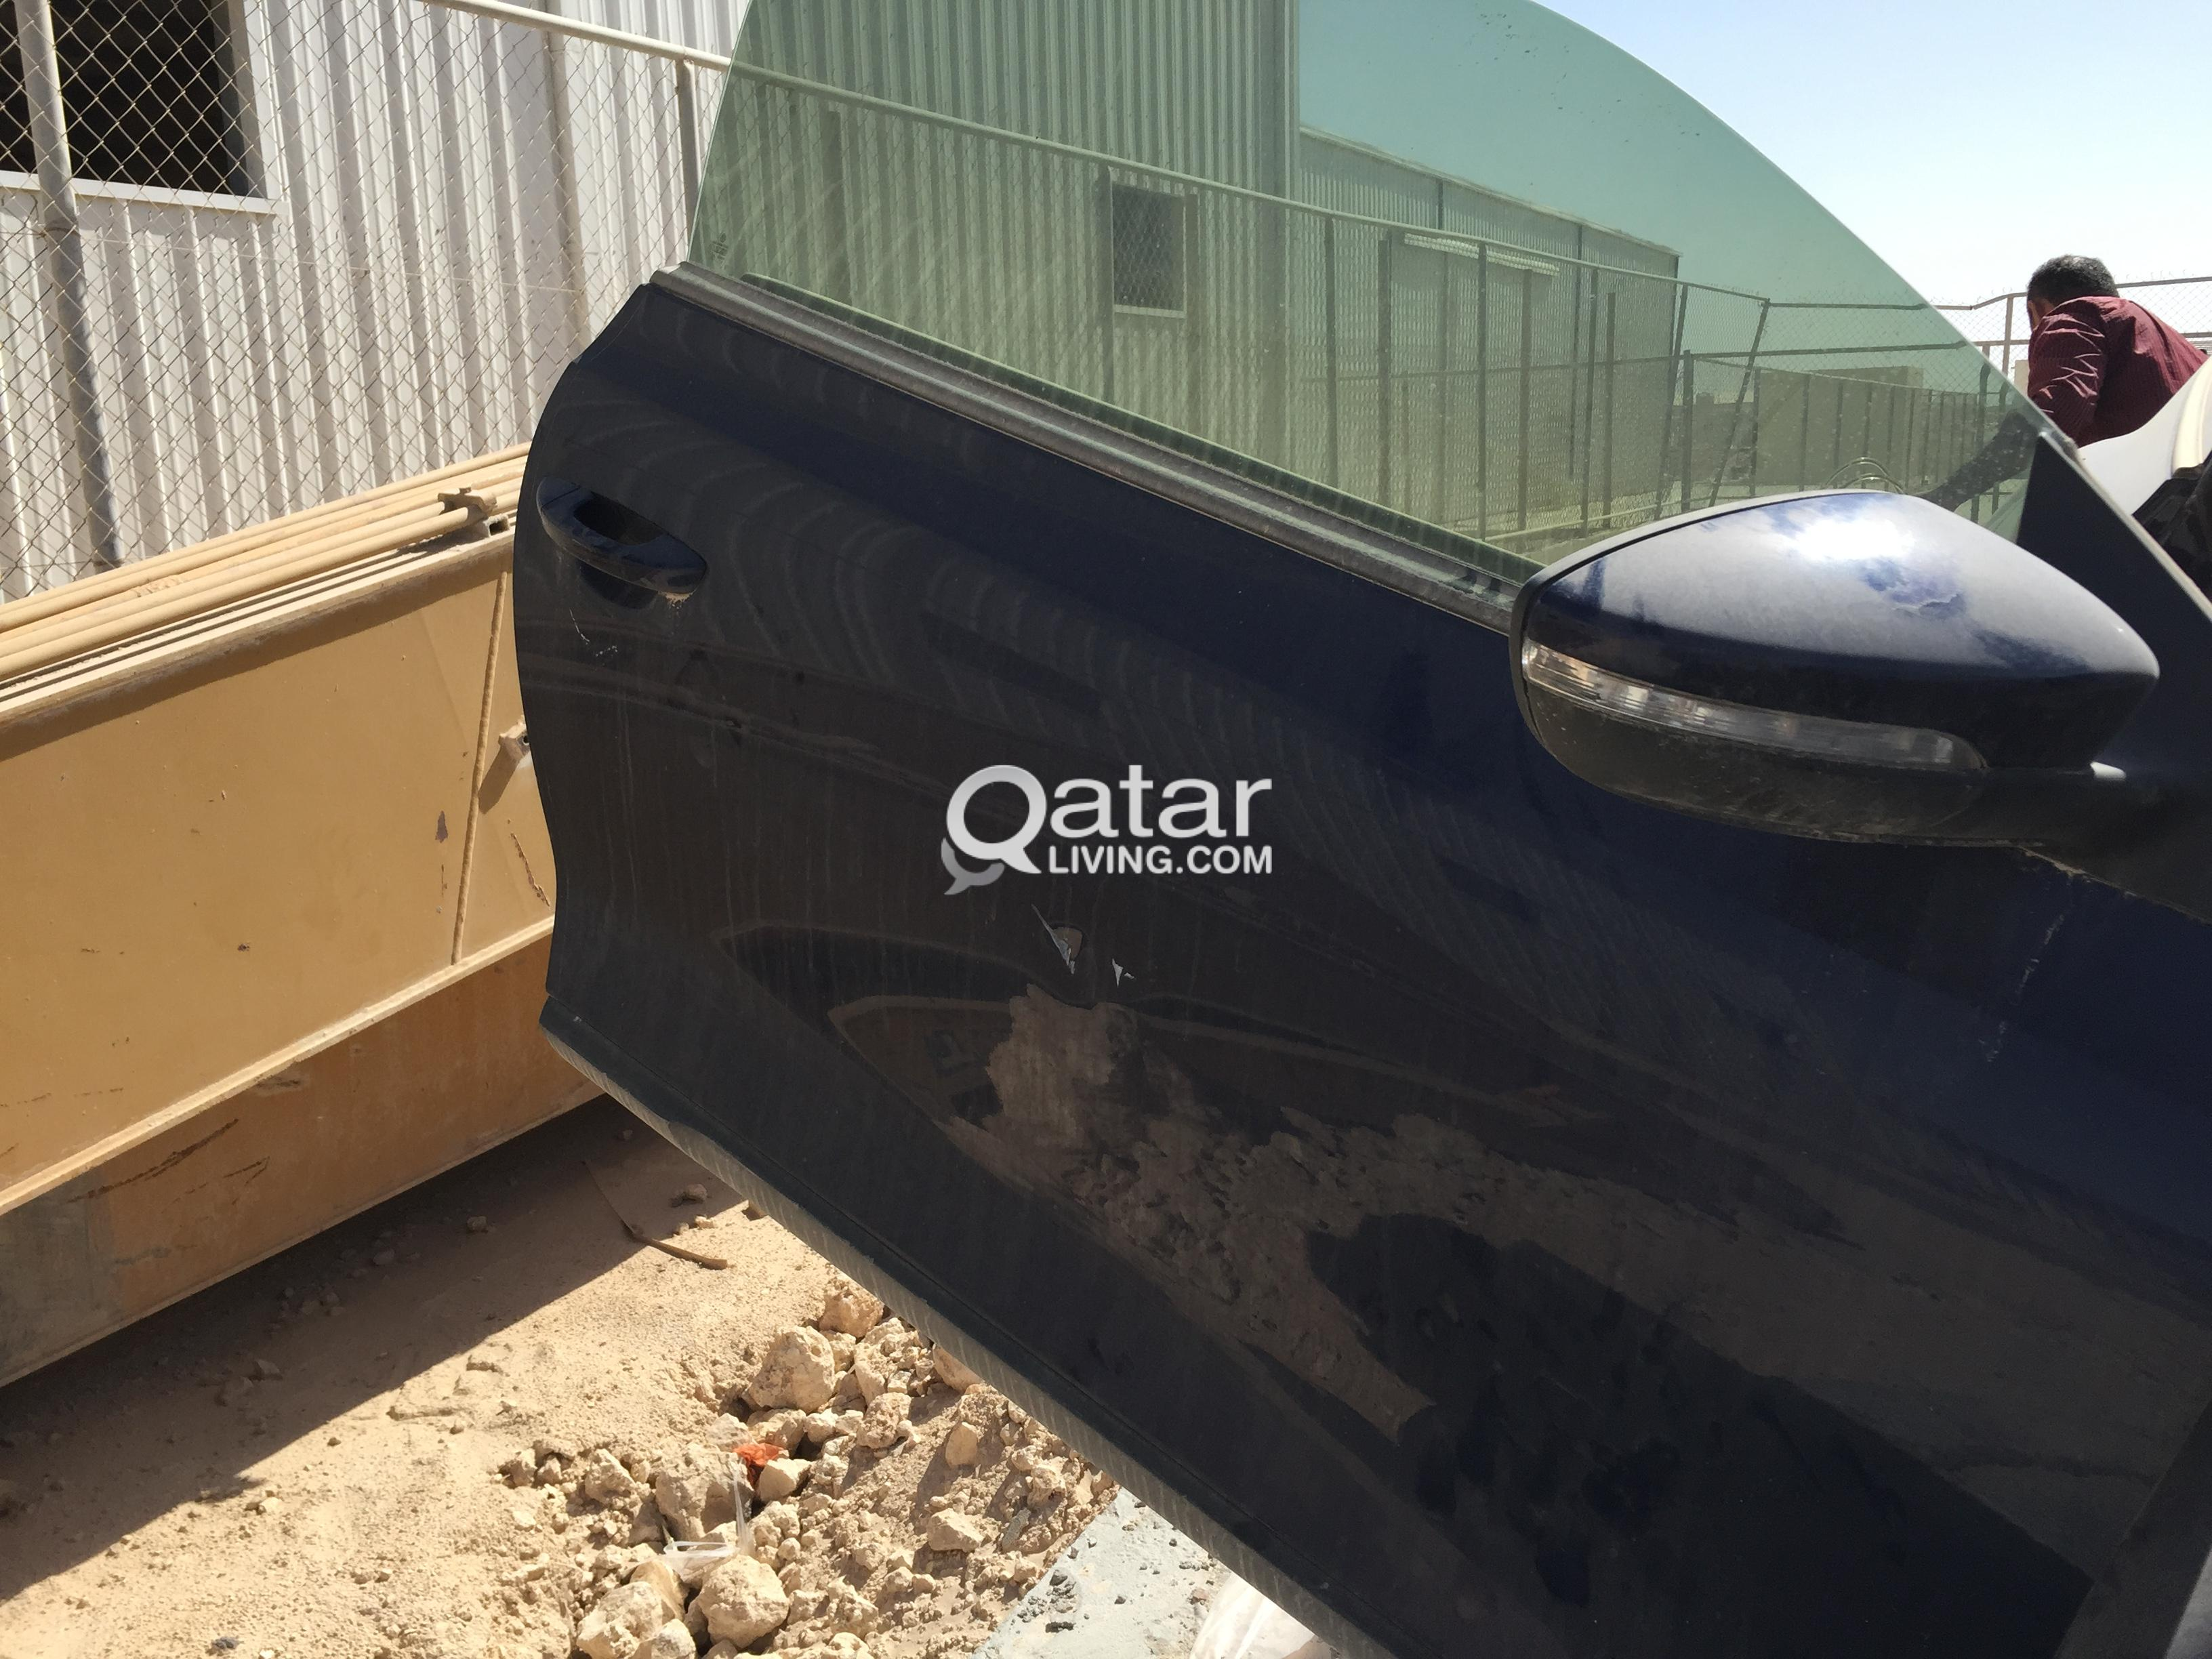 VW scirocco parts for sell | Qatar Living